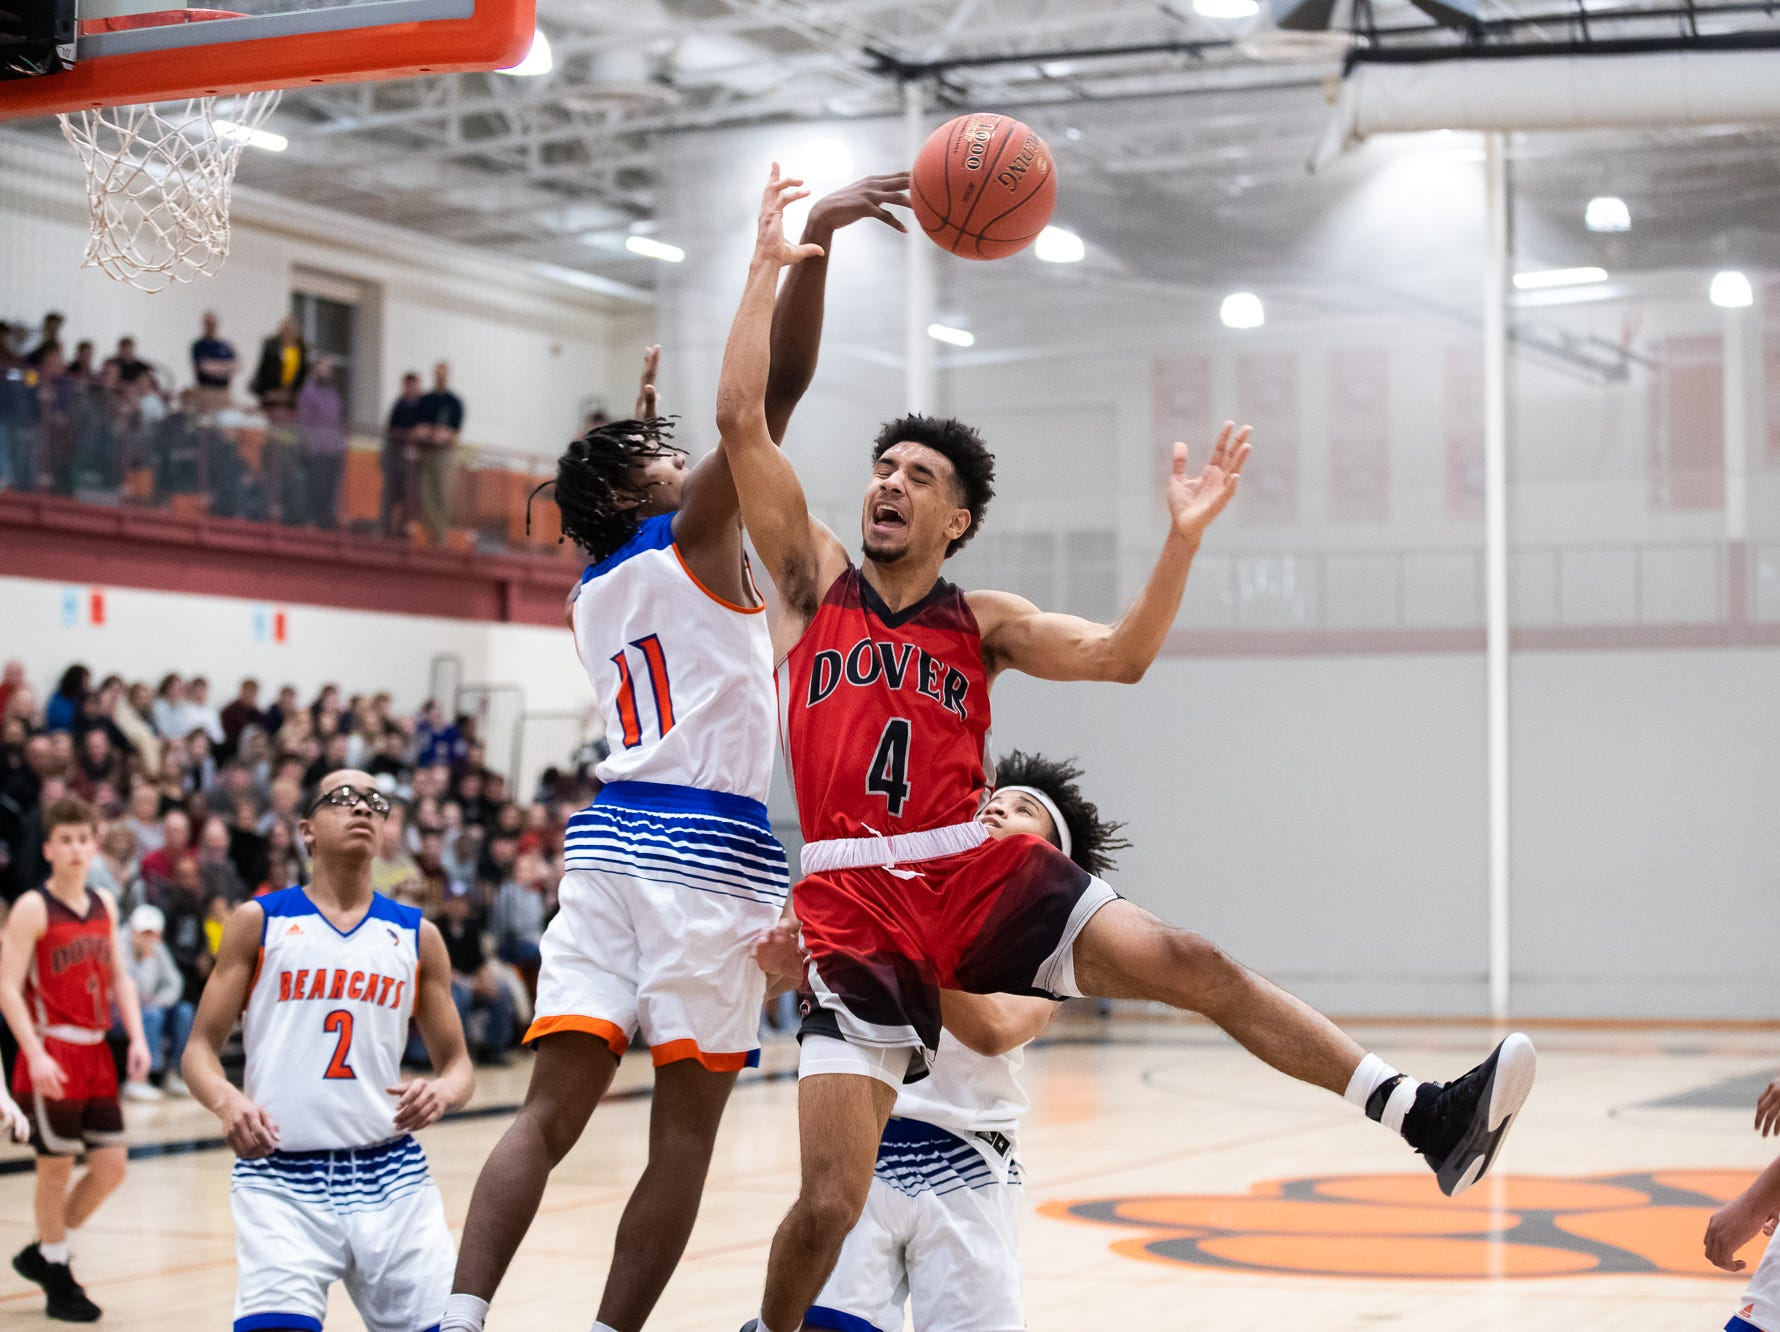 Dover's Keith Davis (4) goes up against York High's Branden X. Mutunga (11) during the first half of a YAIAA quarterfinal between York High and Dover, Saturday, Feb. 9, 2019, at Central York High School. West York led Dover 48-35 at the half.